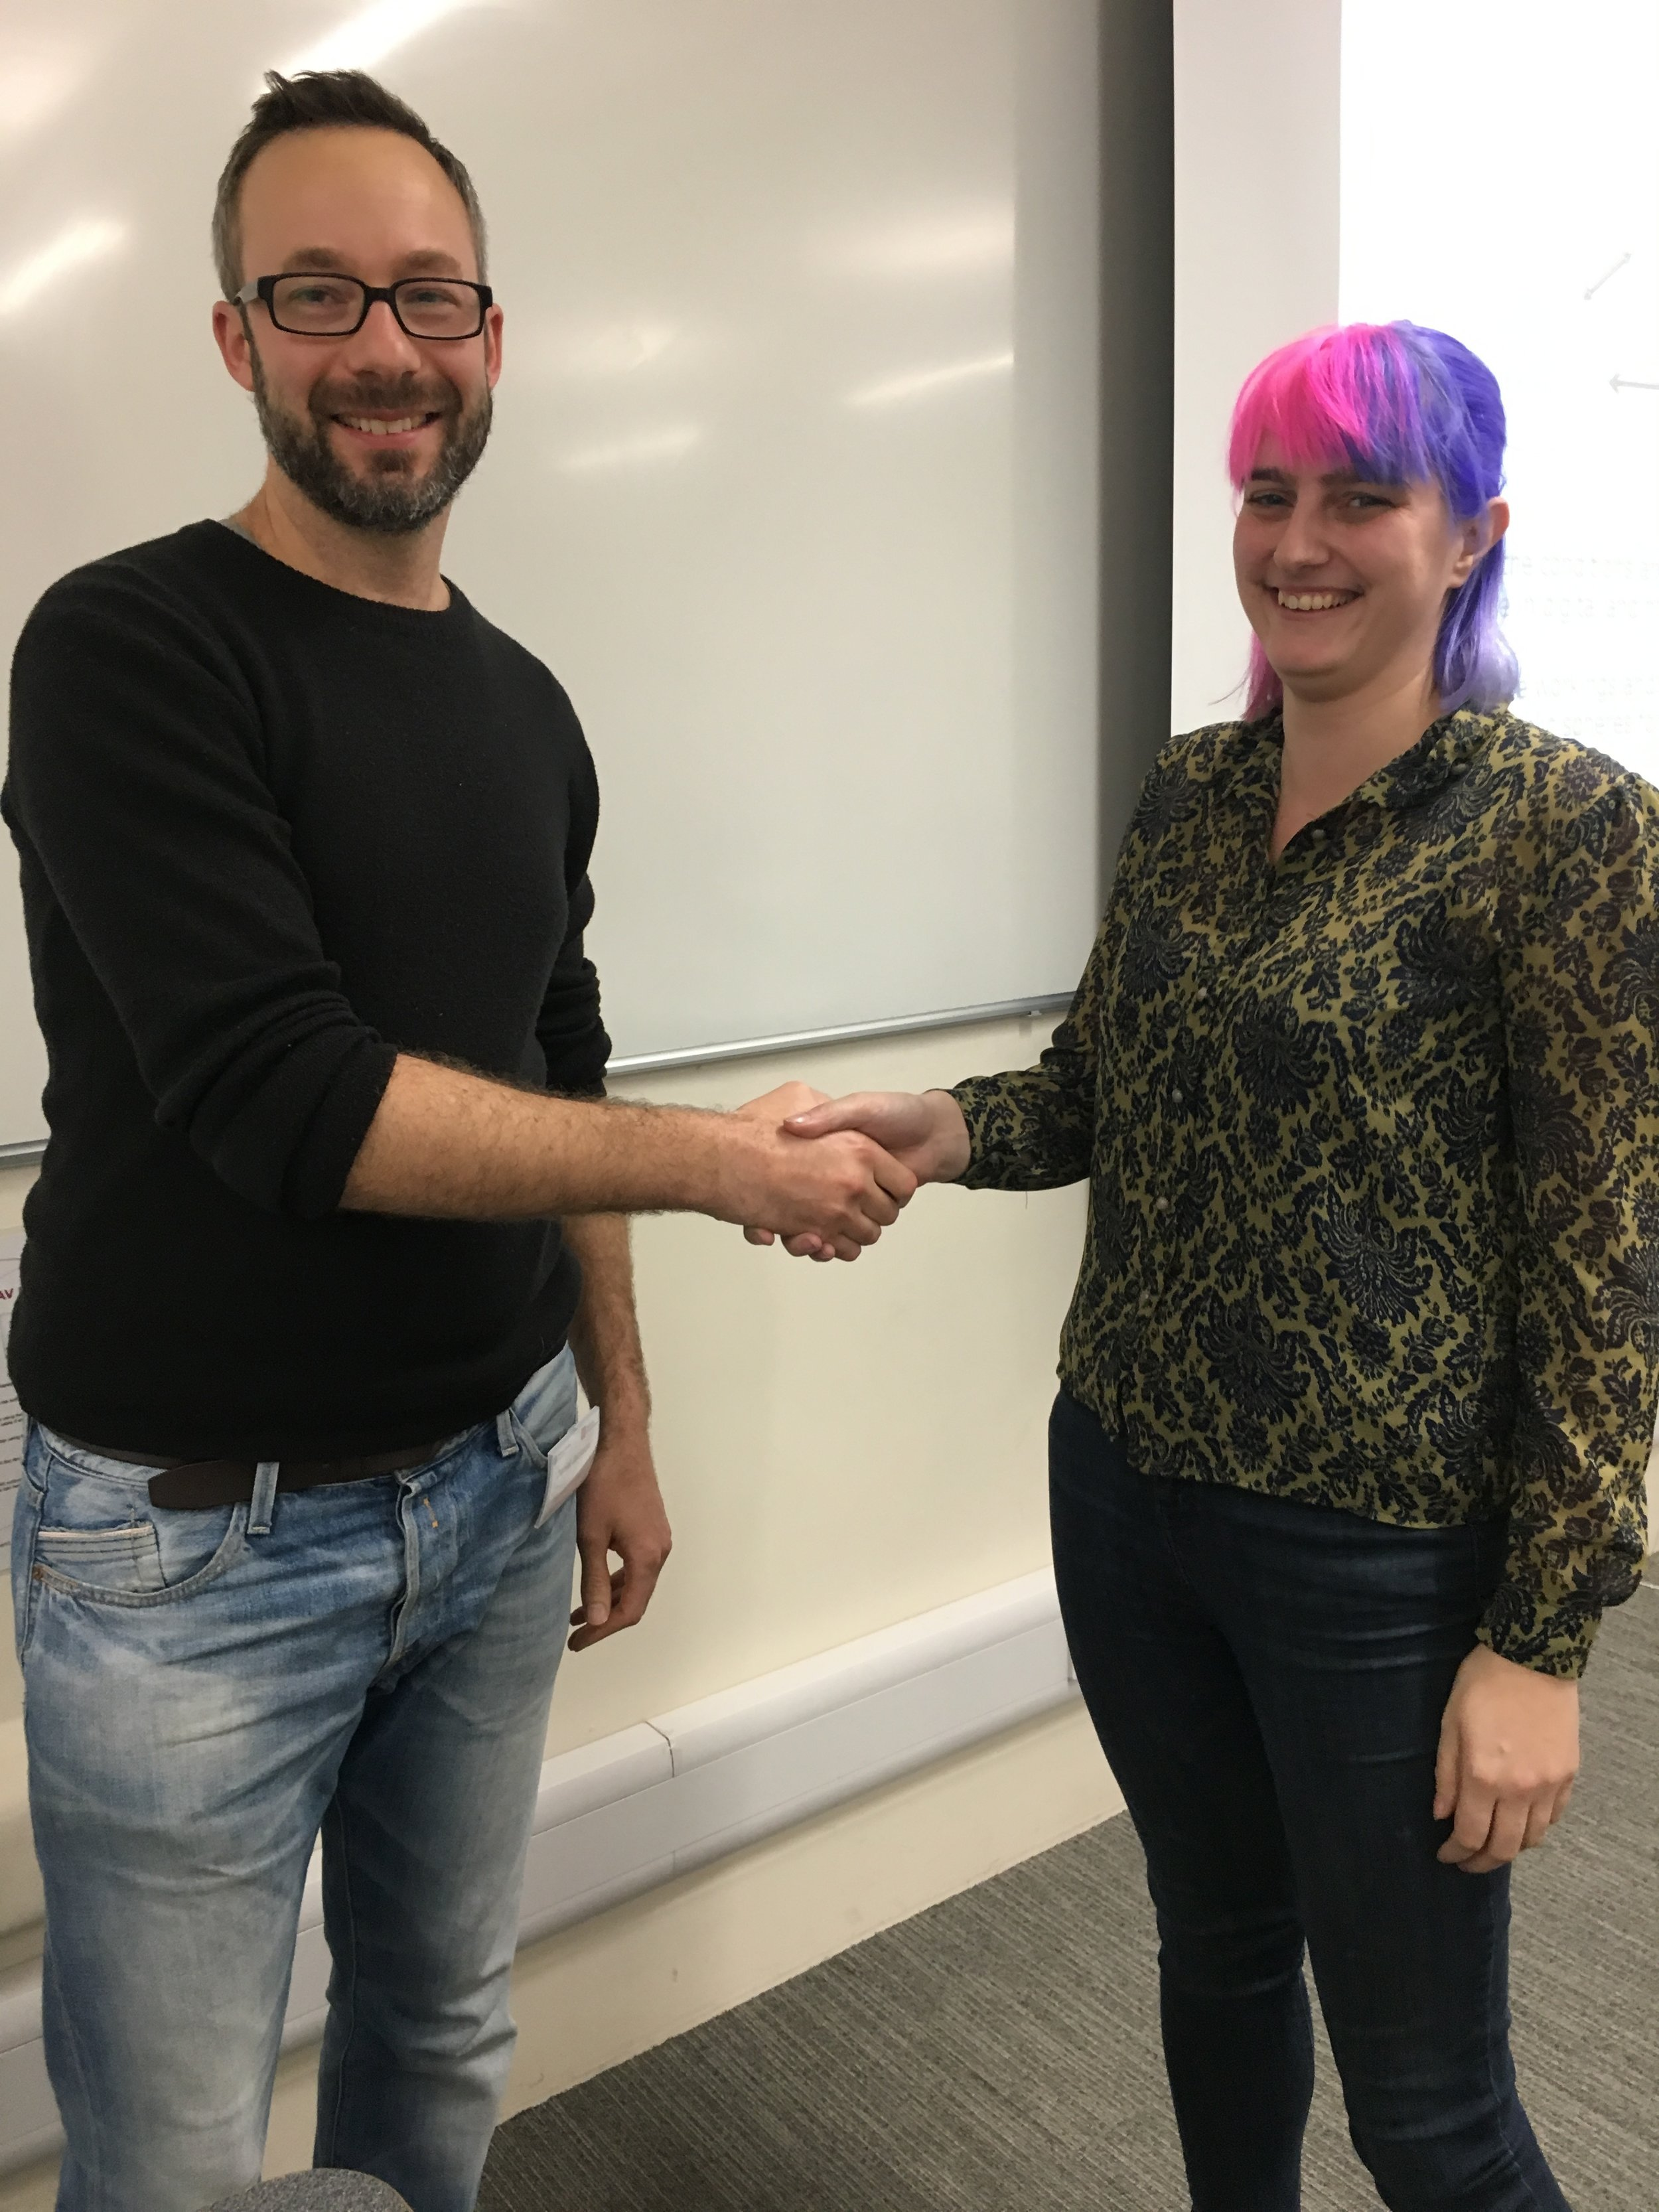 Dan Jackson, convenor of the PSA Media and Politics Group, congratulates Amber on her honorable mention.